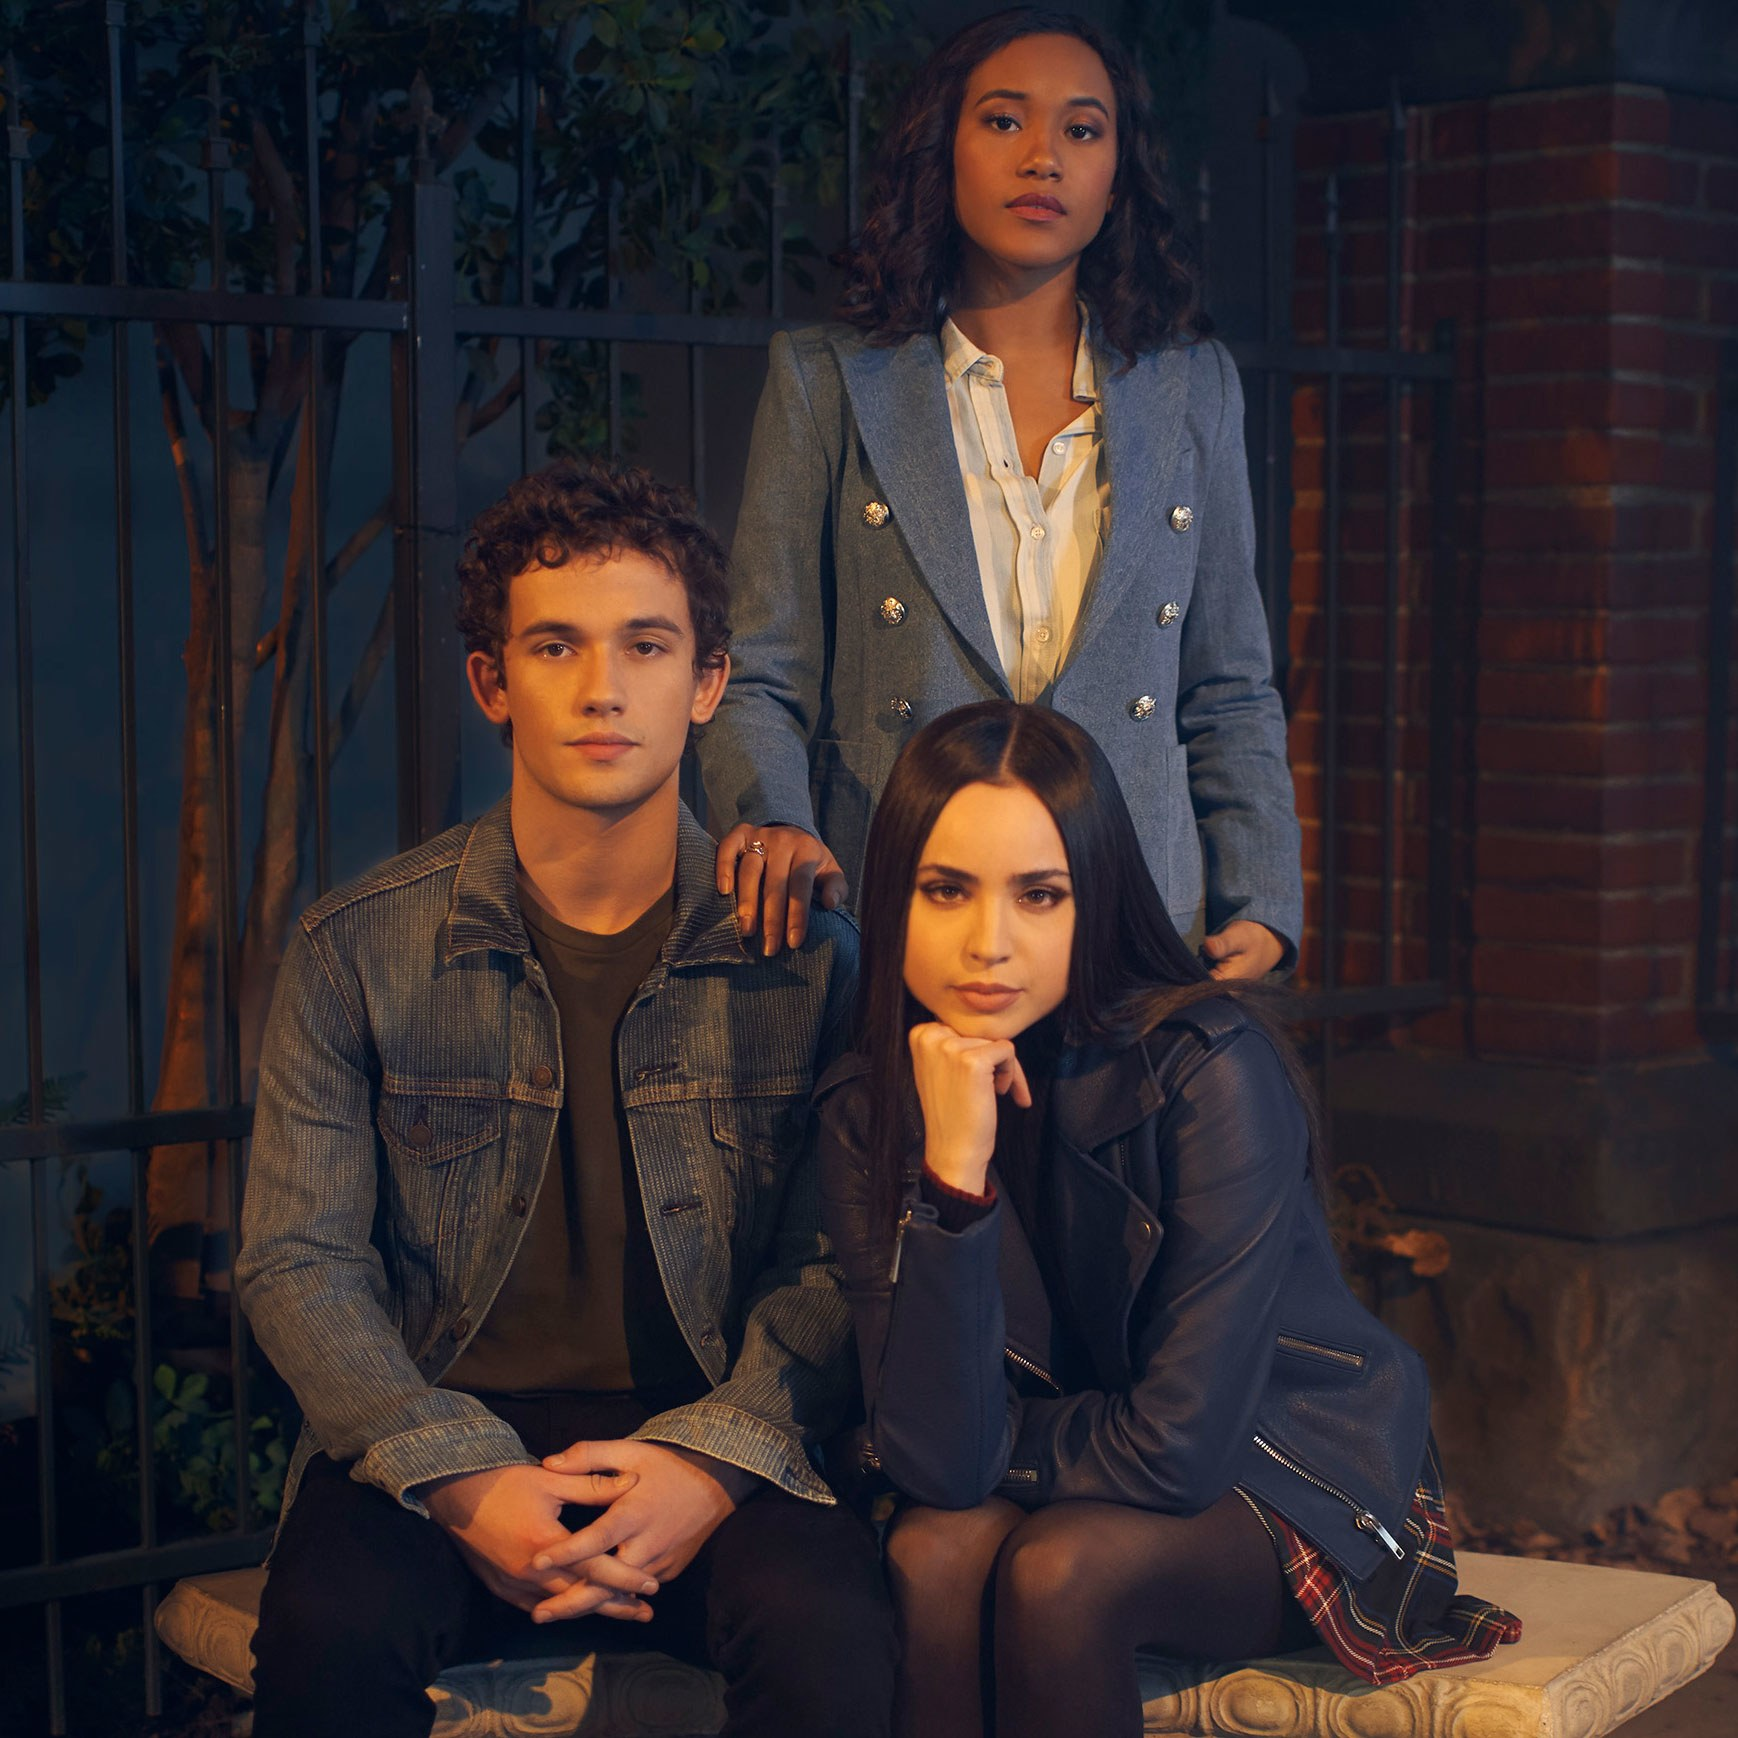 00-tout-pretty-little-liars-the-perfectionists.jpg